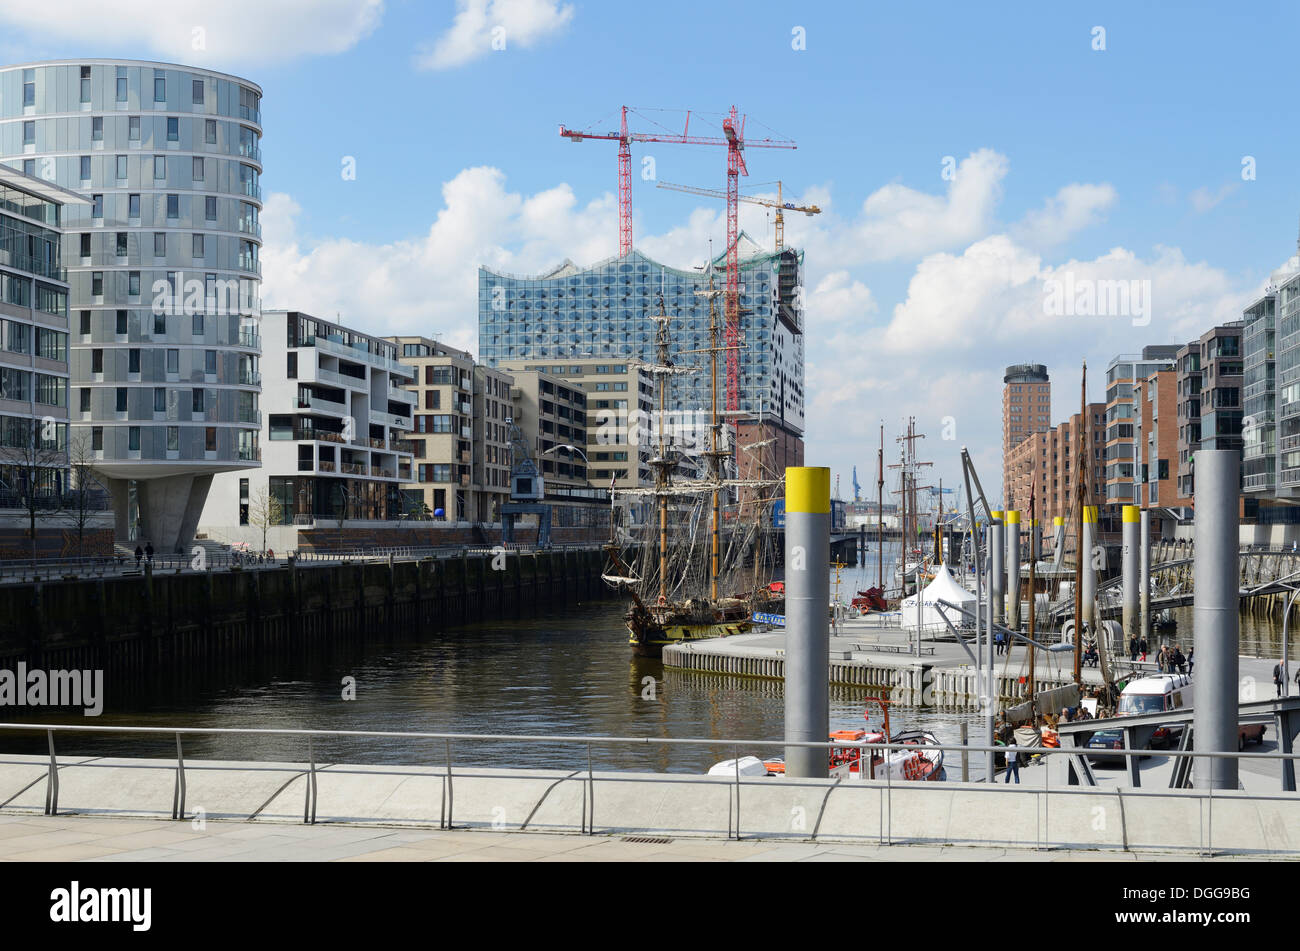 Ships are moored in the Tall Ship Harbour, Traditionsschiffhafen harbour, modern residential and office buildings, Stock Photo